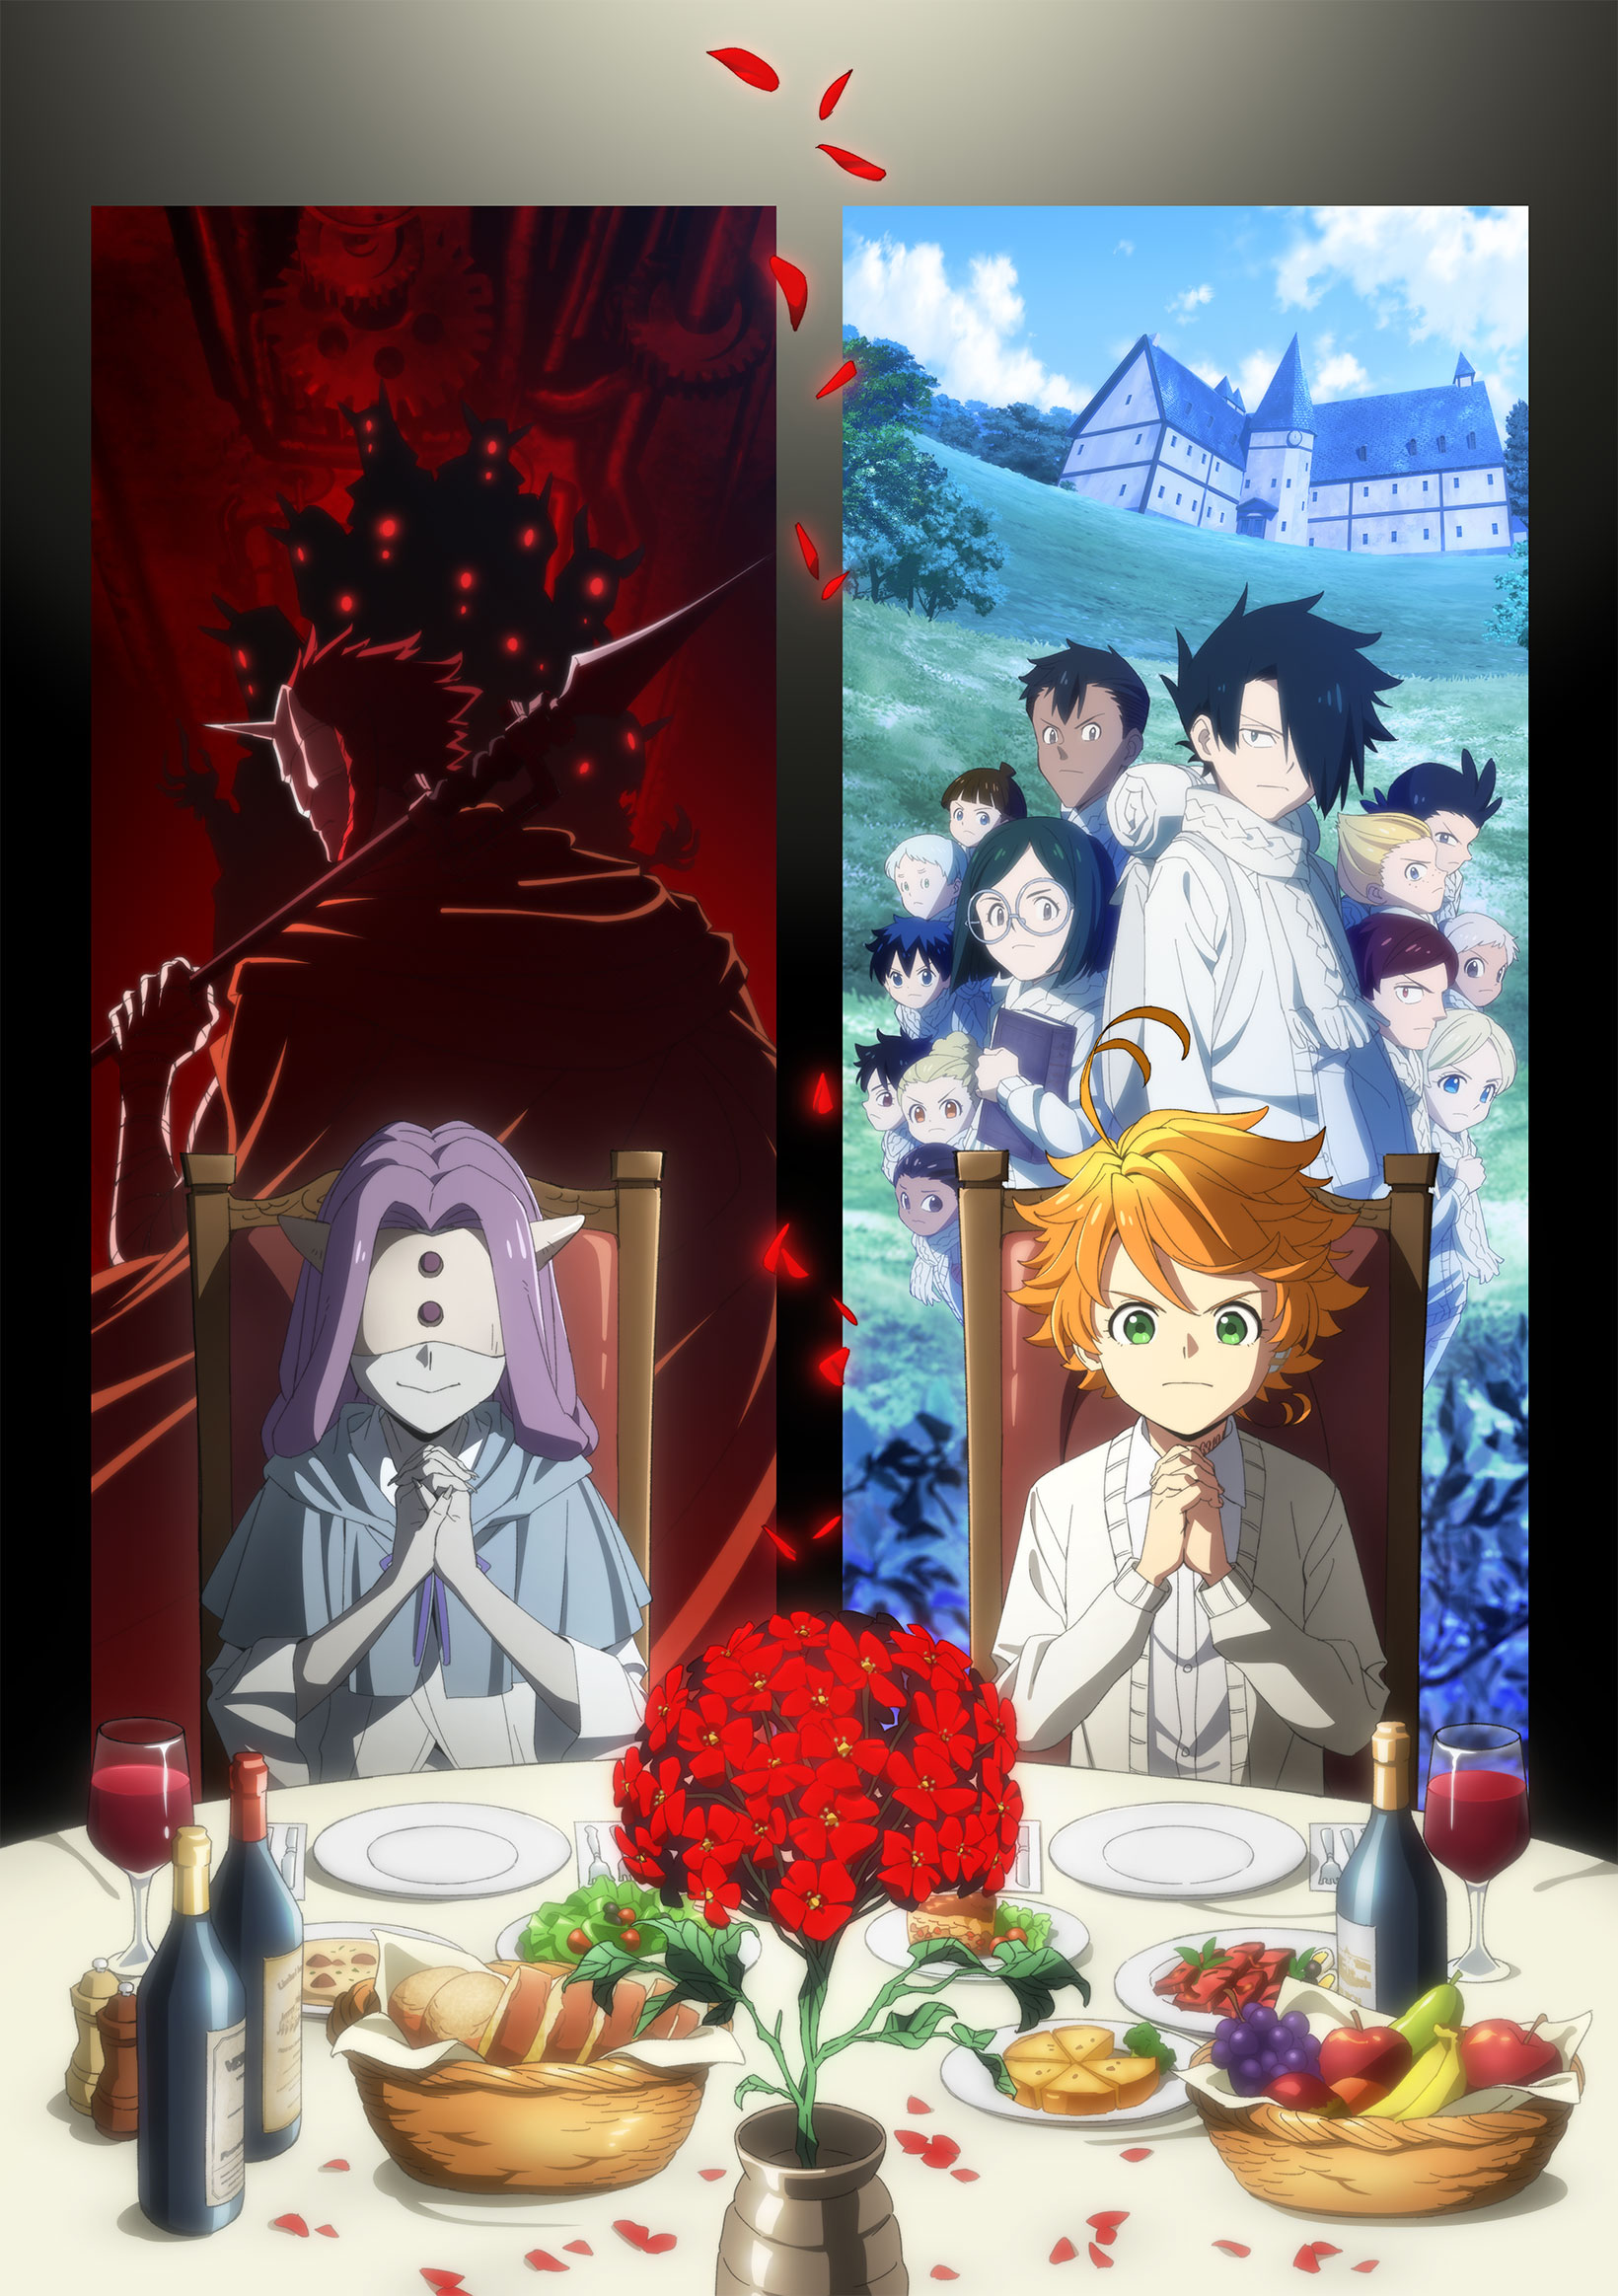 cloverworks 3 shows winter 2021 - The Promised Neverland